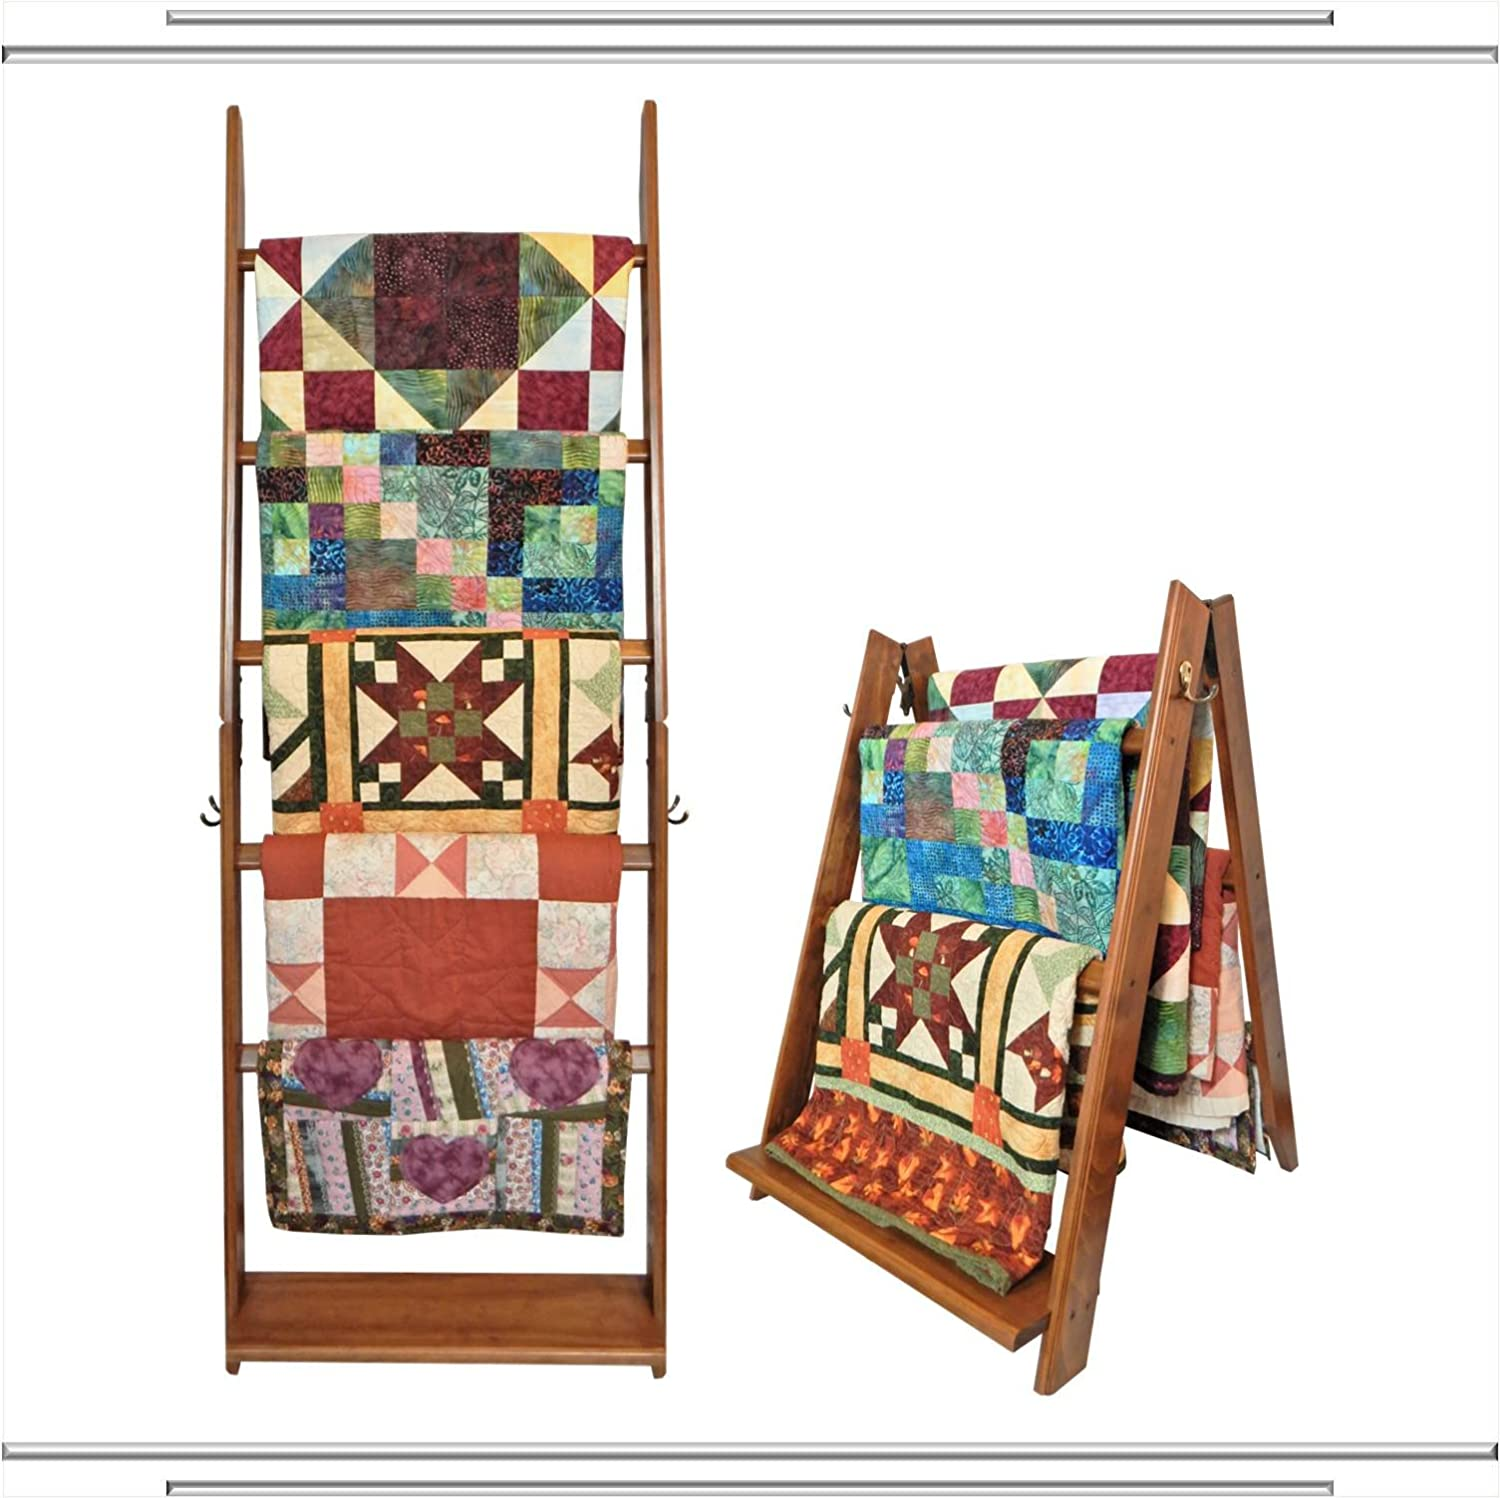 The LadderRack 2-in-1 Quilt Display Rack (5 Rung/30 Model/American English) Built by Briick Quilting QLR-50630